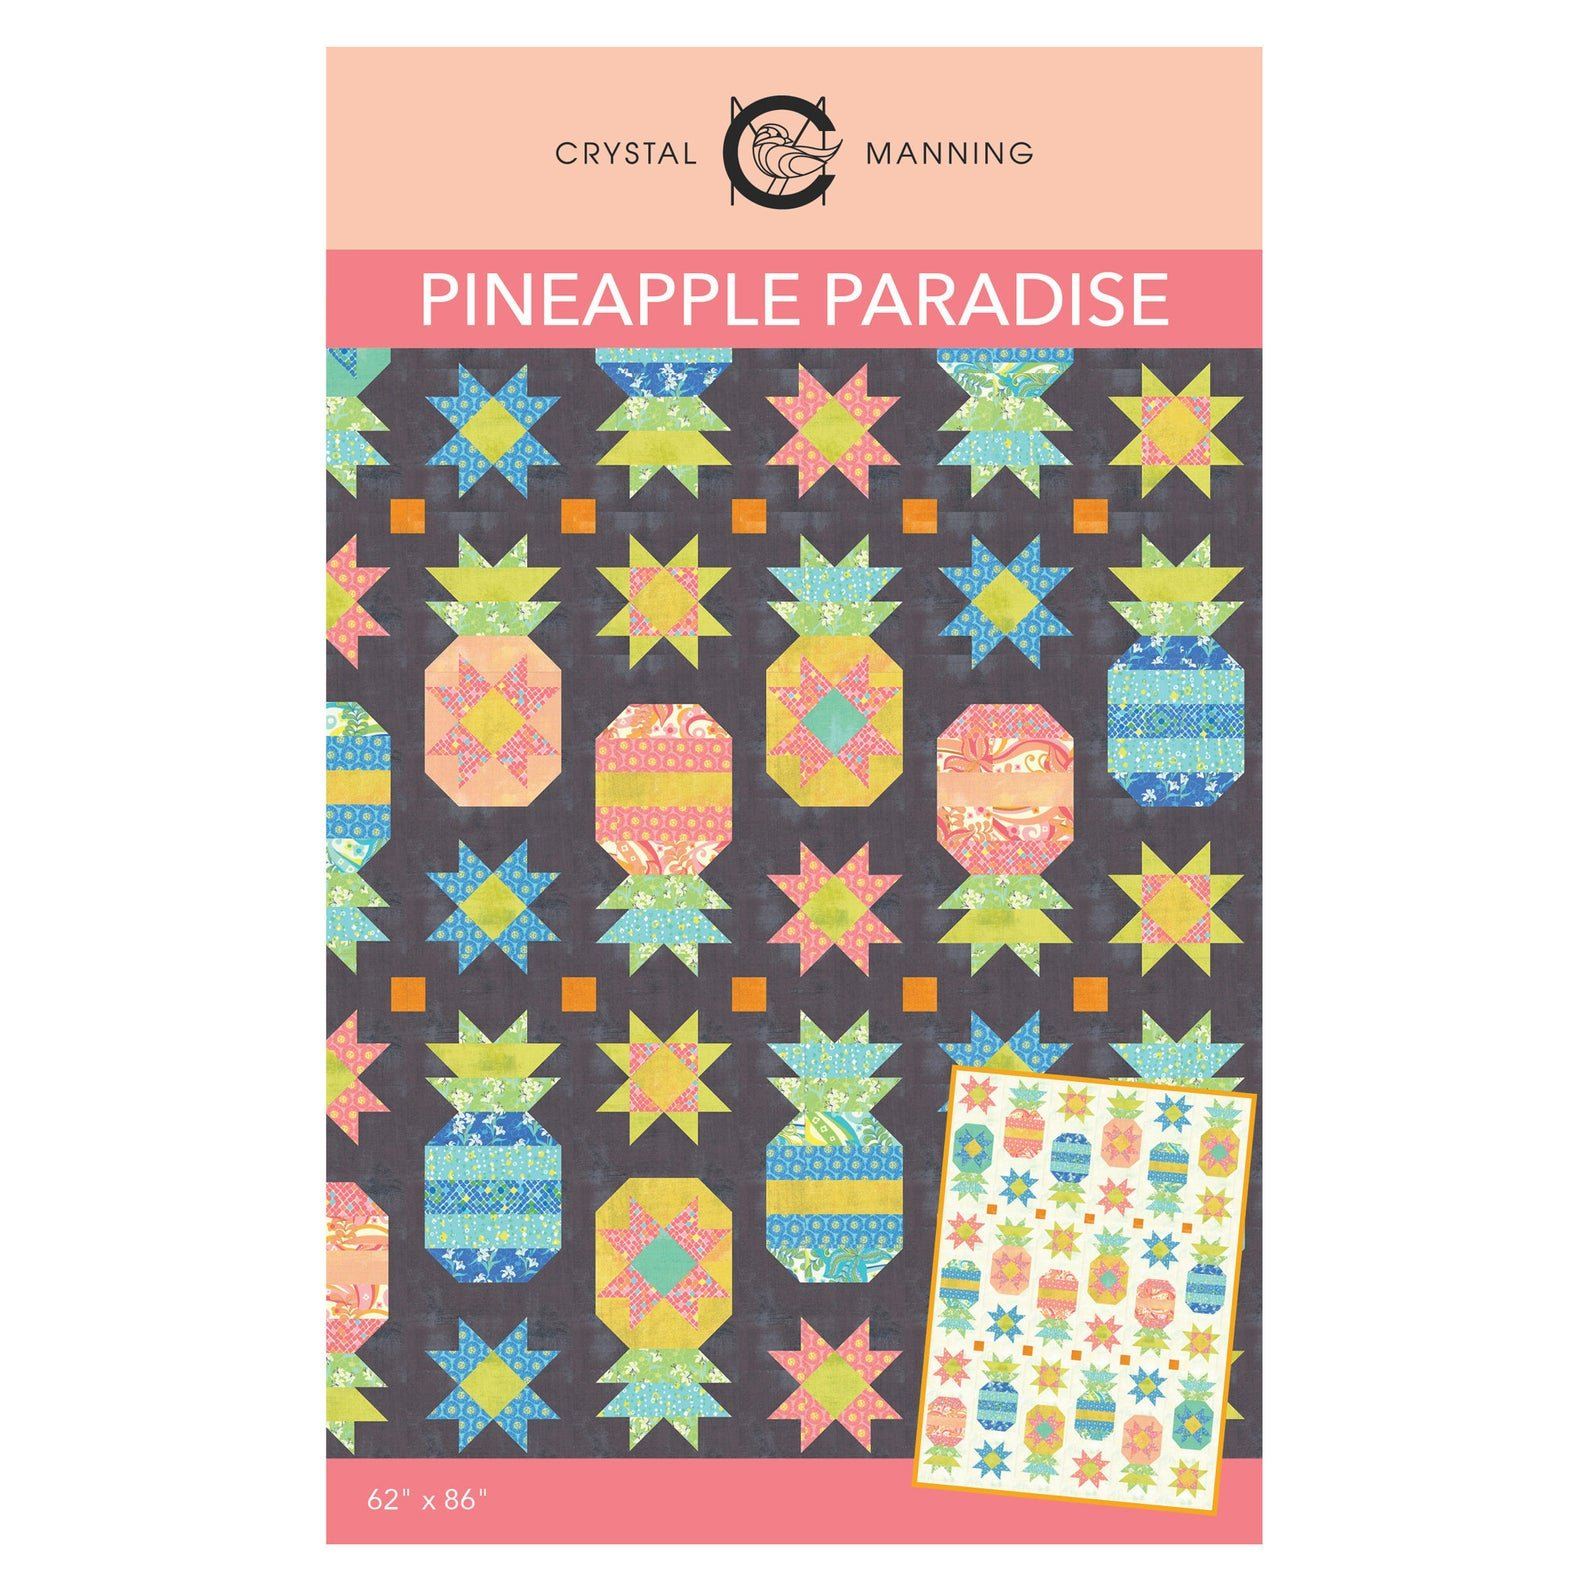 Pineapple Paradise Quilt Pattern by Crystal Manning for Moda Fabrics